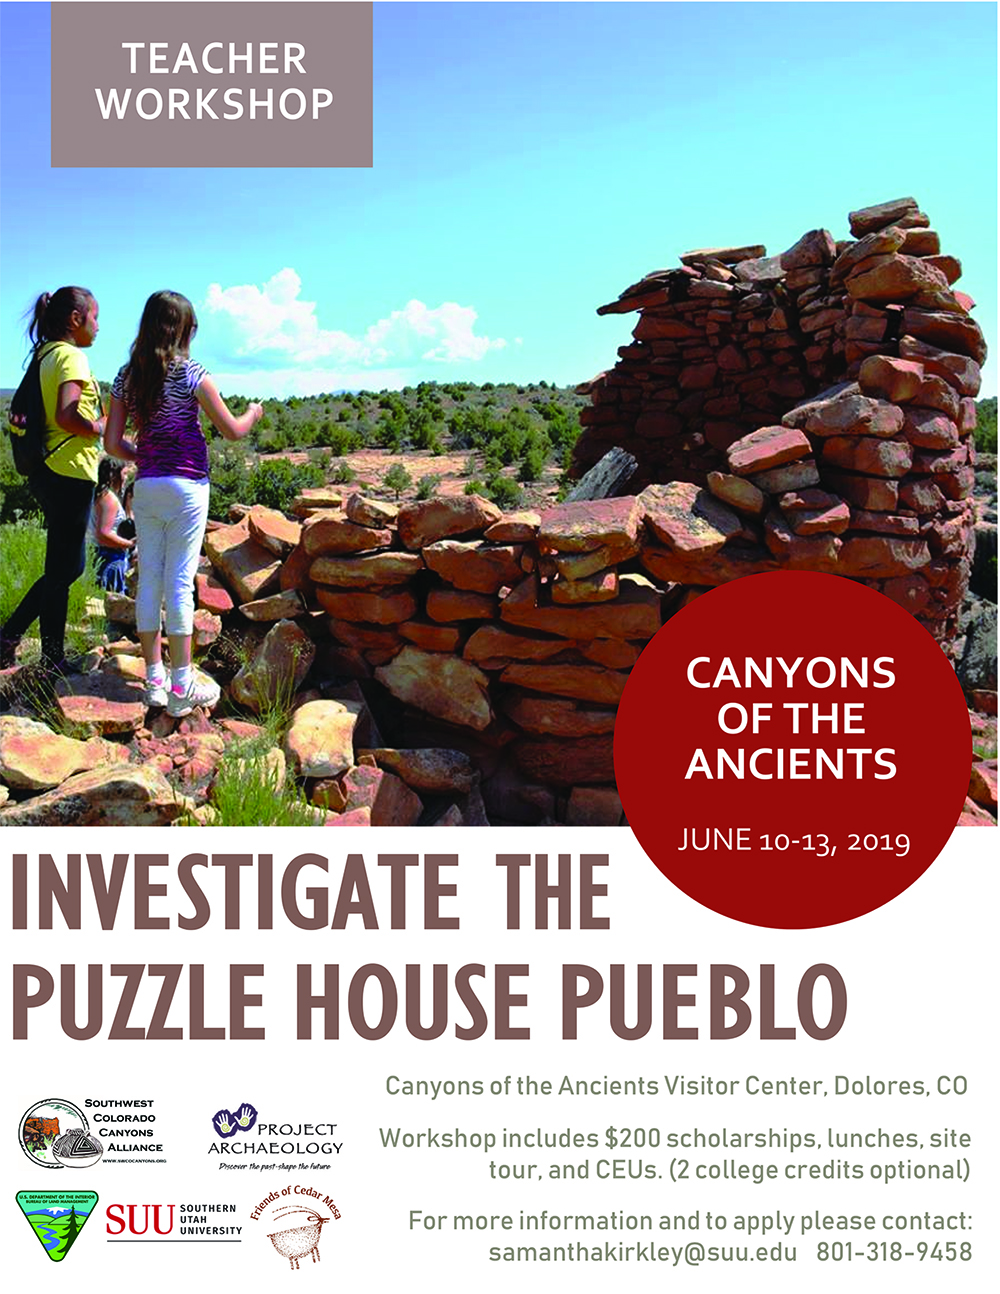 Canyons of the Ancients Educator Workshop @ Canyons of the Ancients Visitor Center